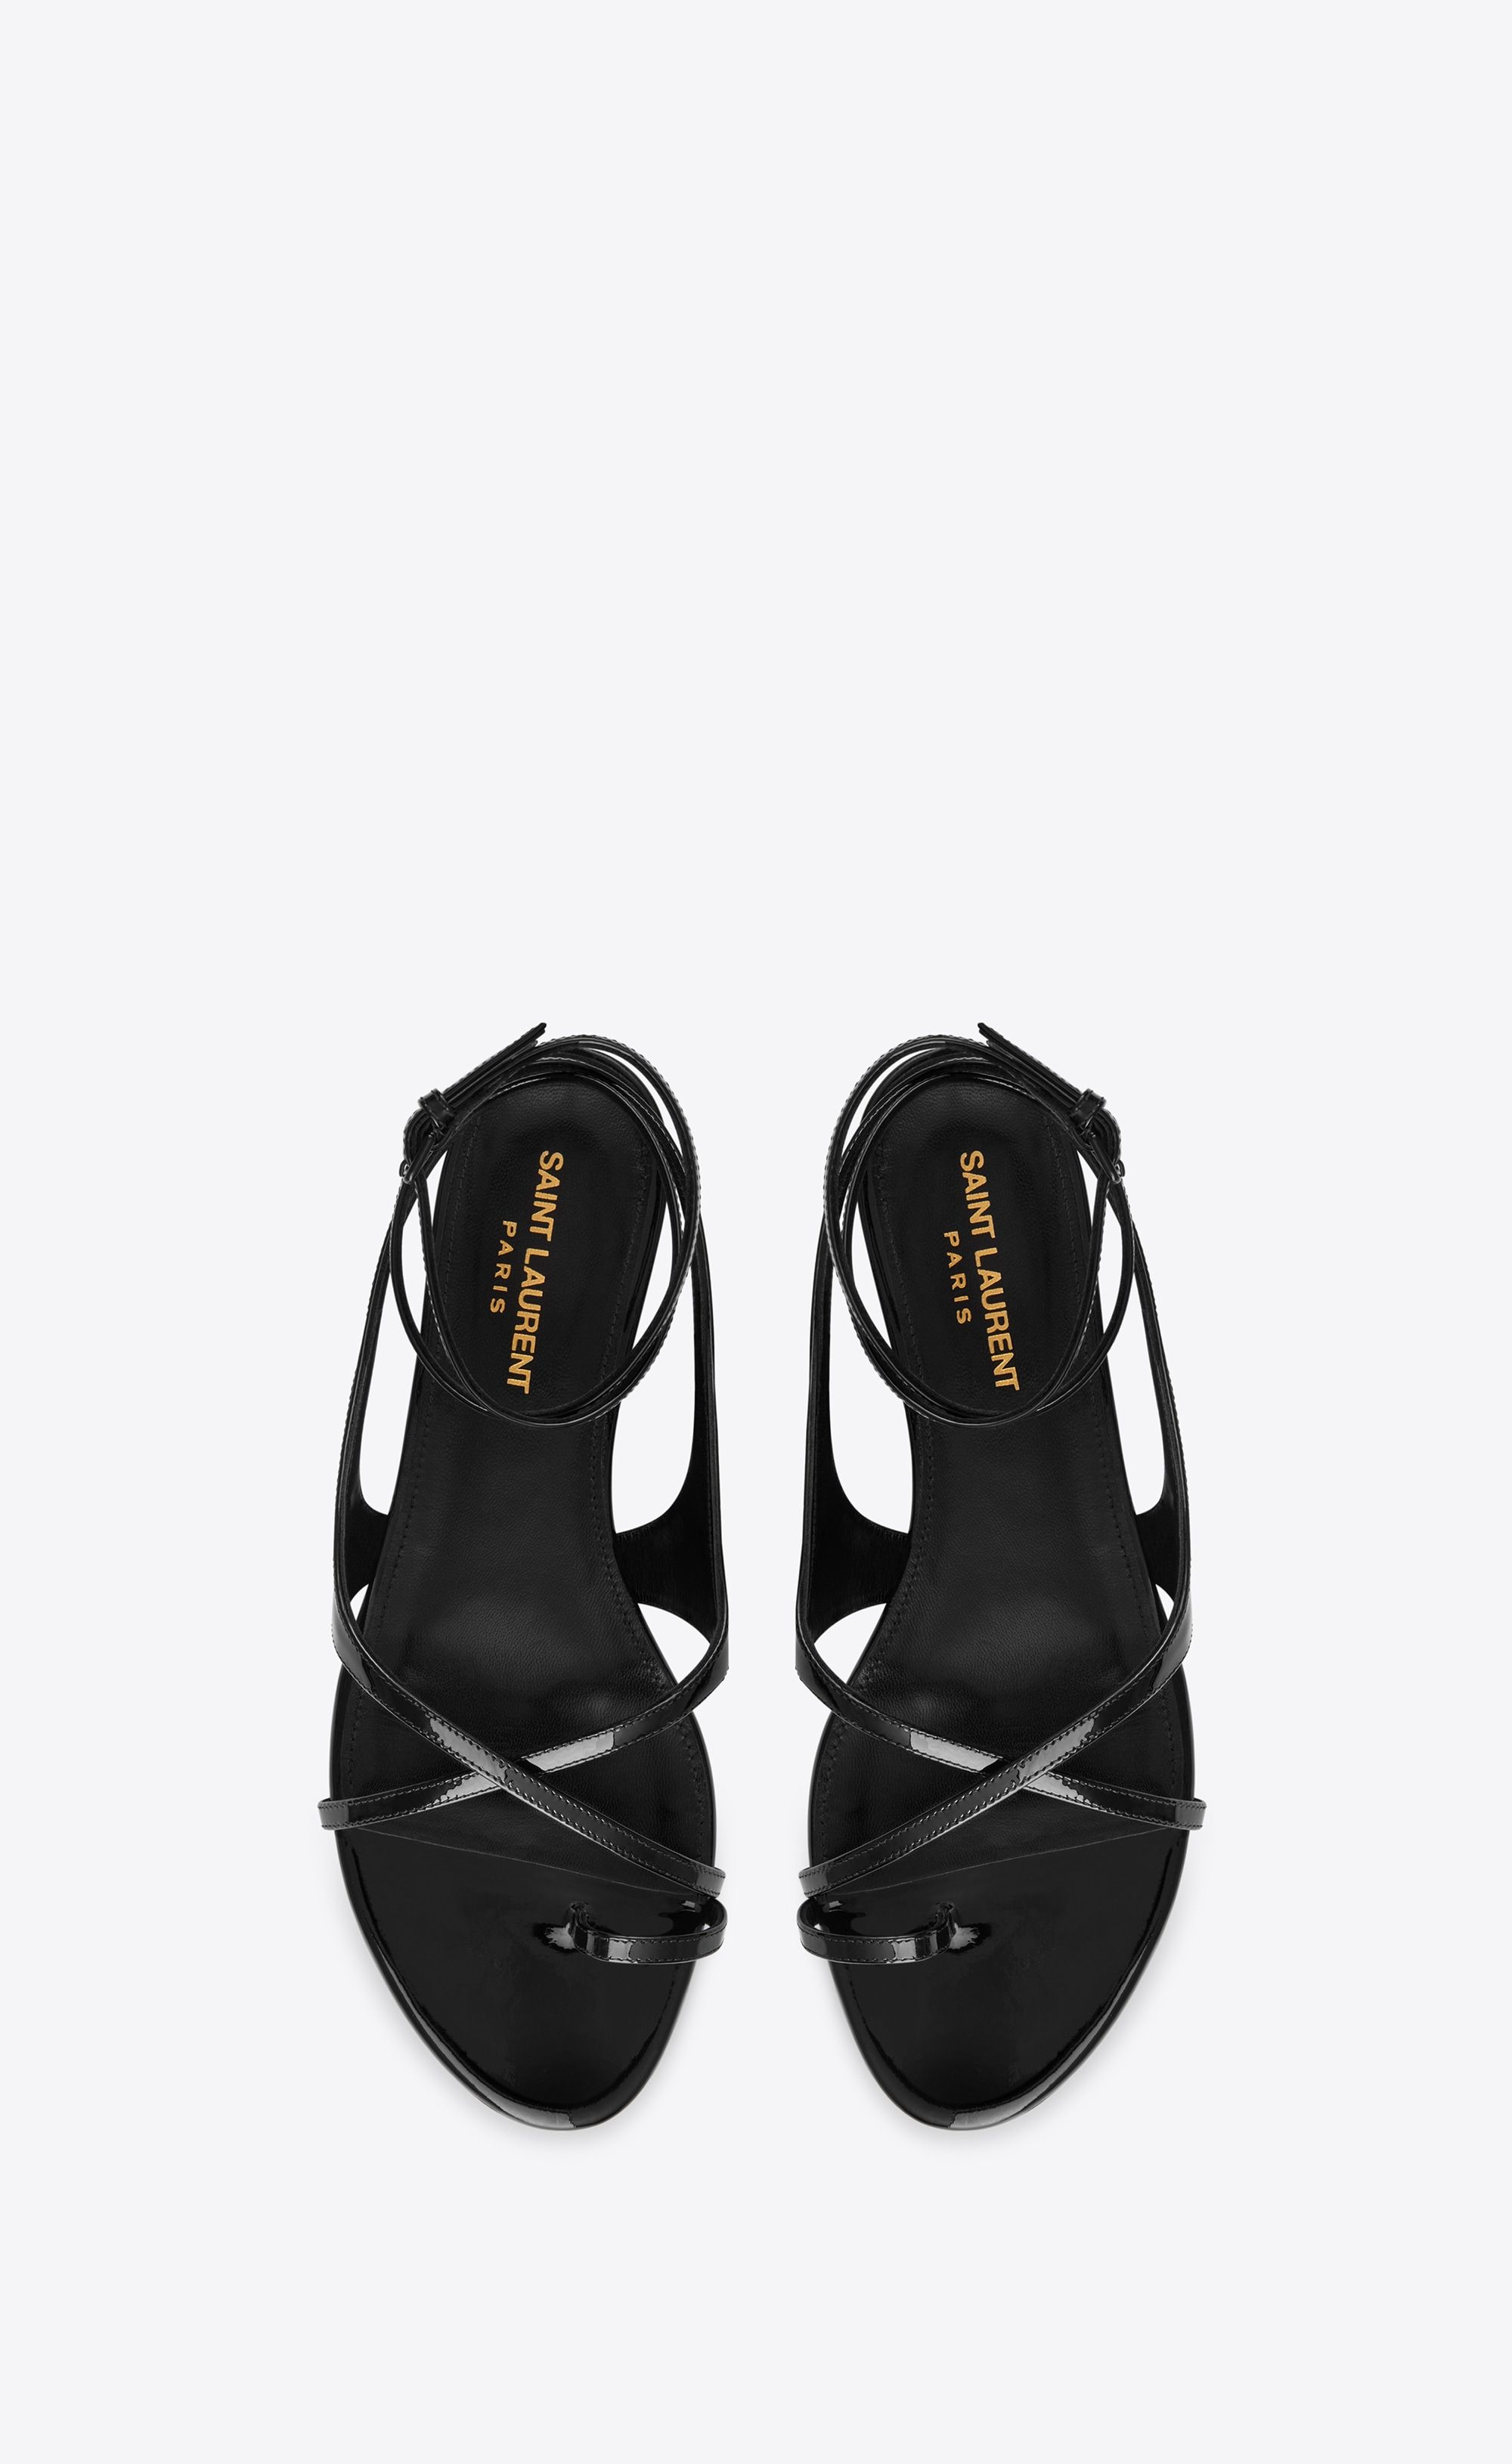 c0d6320d9b03a GIA open sandals in patent leather in 2019 | If the shoe fits, wear it!